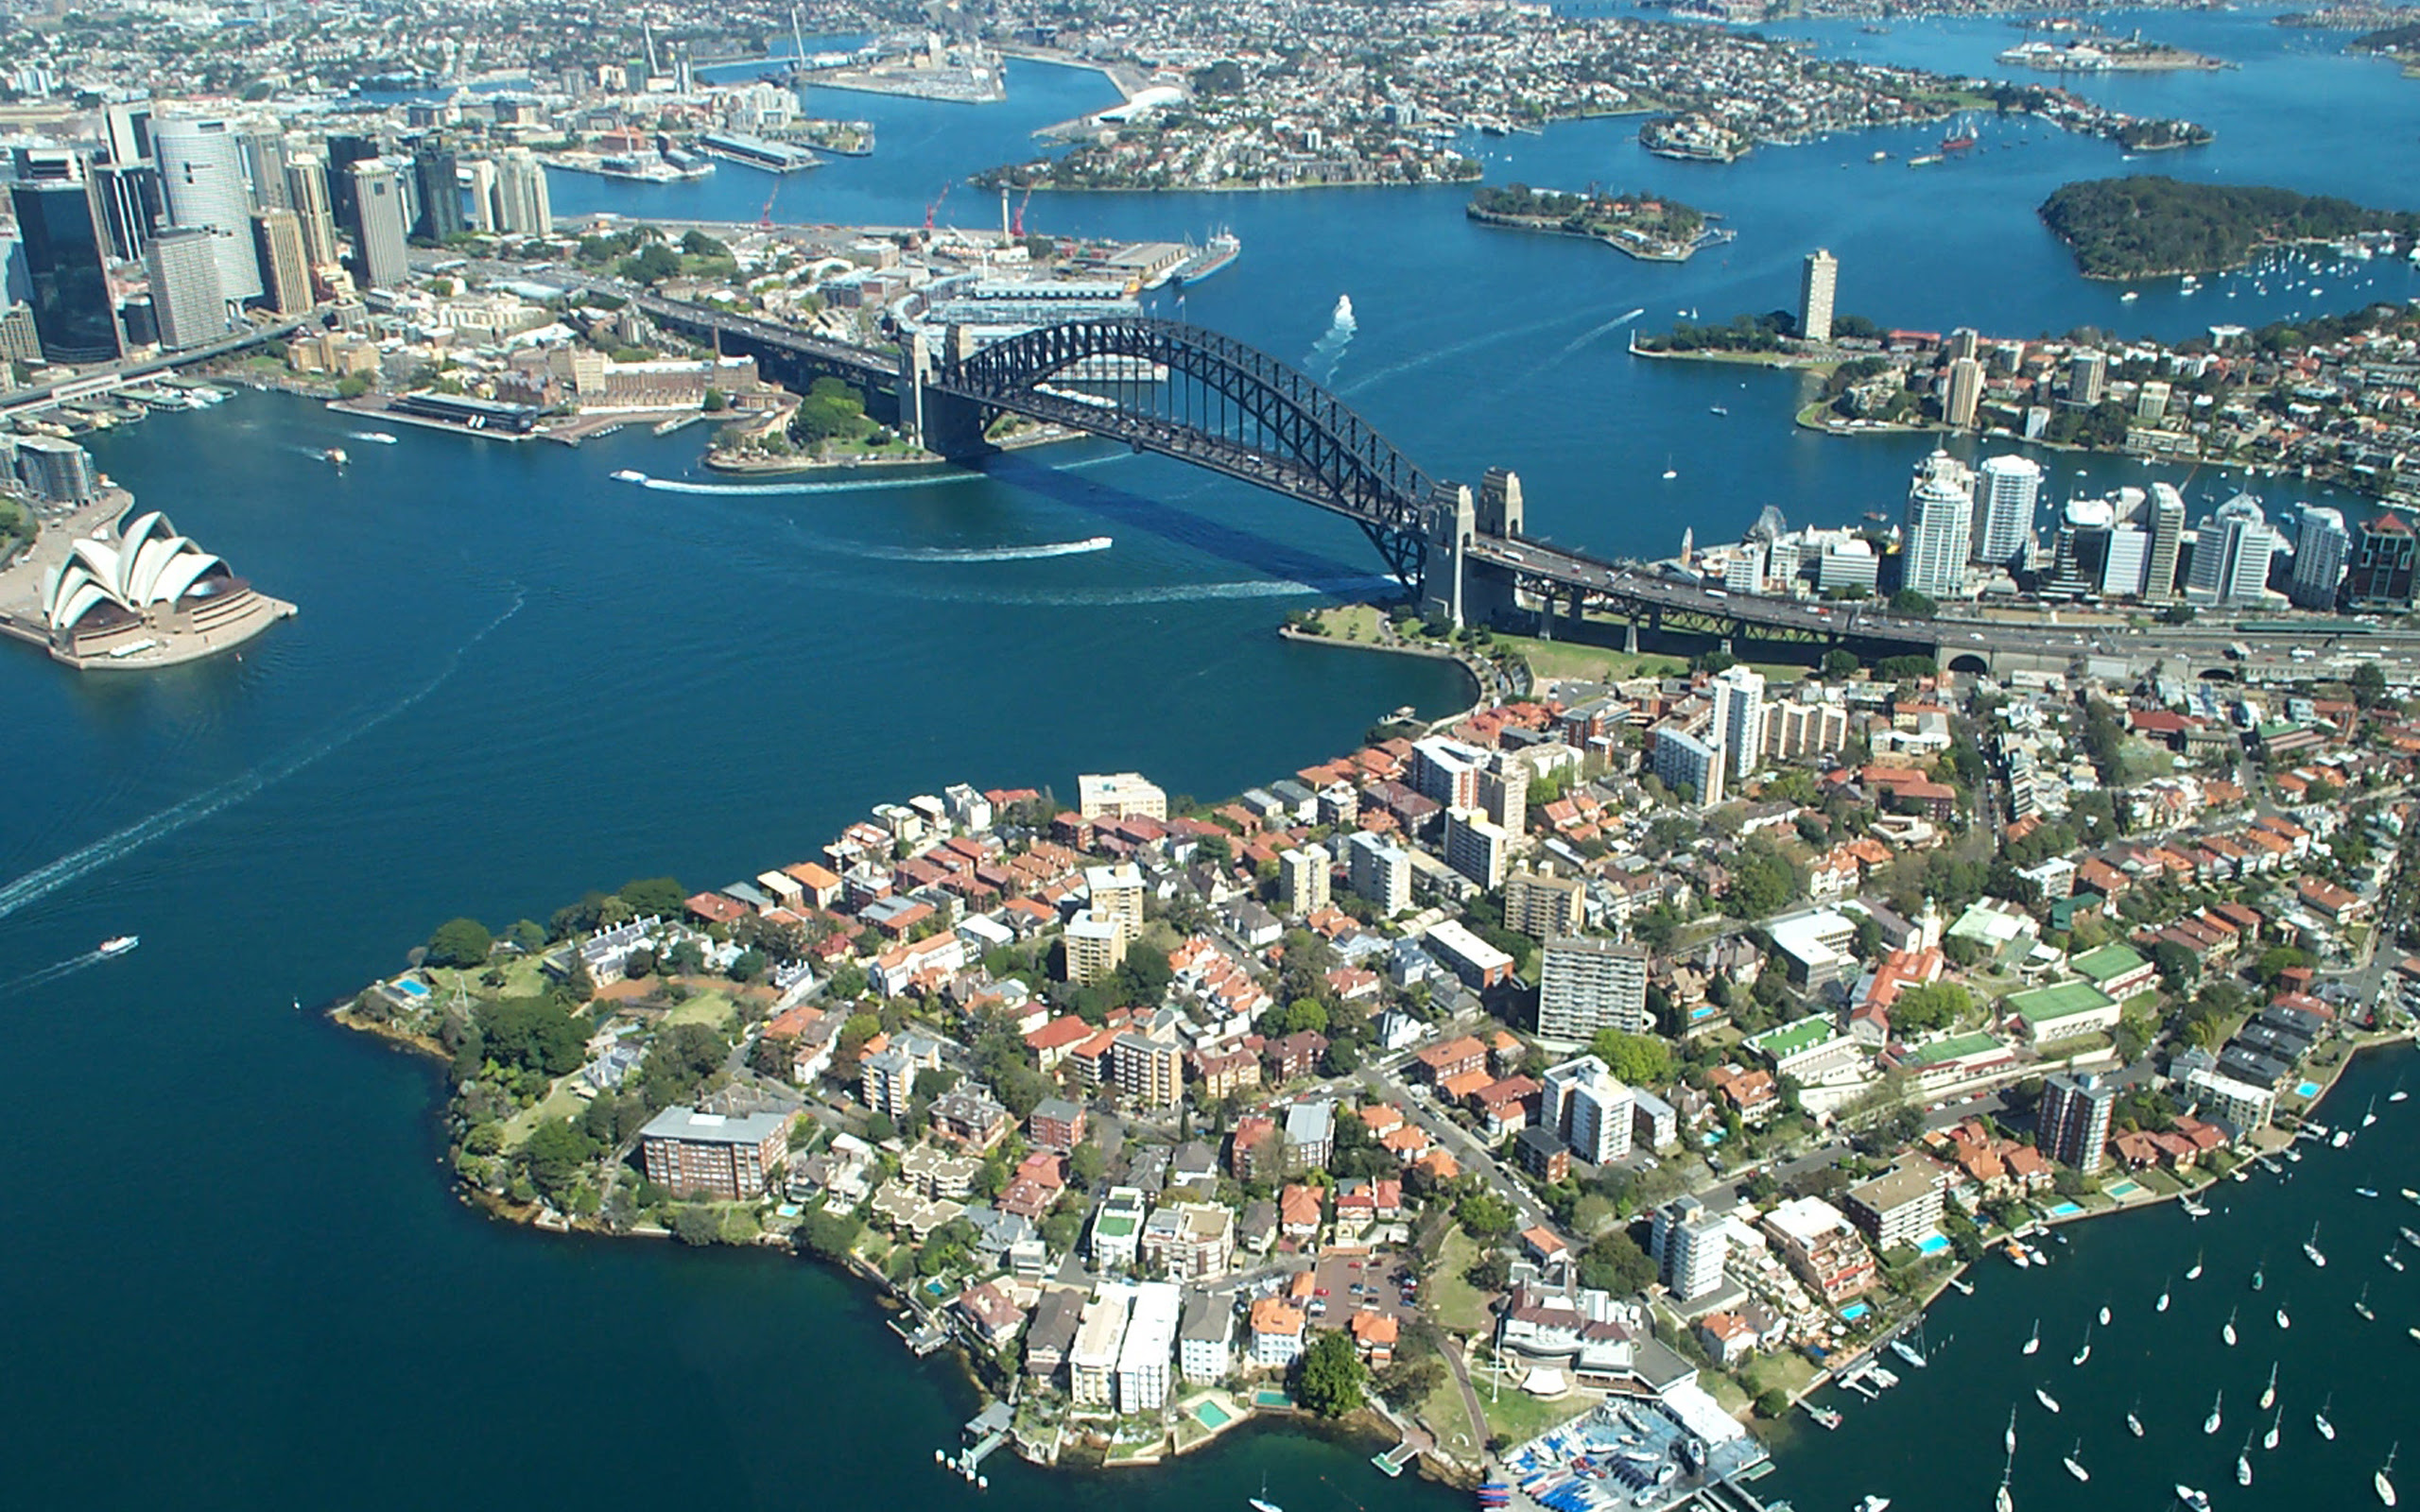 Sydney Harbour Bridge from the air [2560 X 1600]